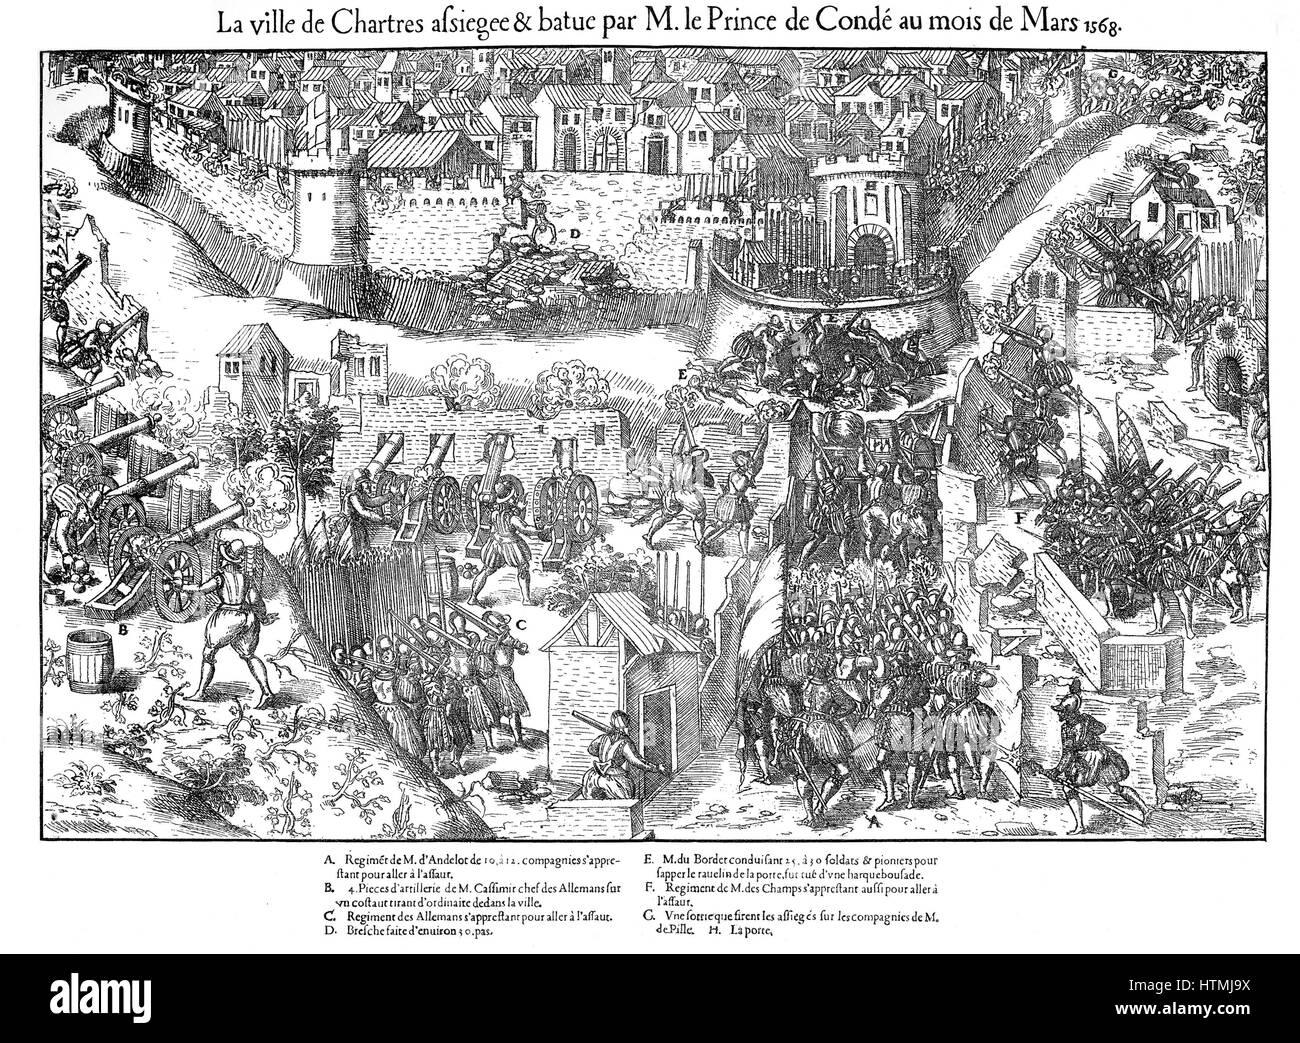 French Religious Wars 1562-1598. Siege of Chartres. Huguenots besieged Chartres at the end of February 1568, breaching - Stock Image